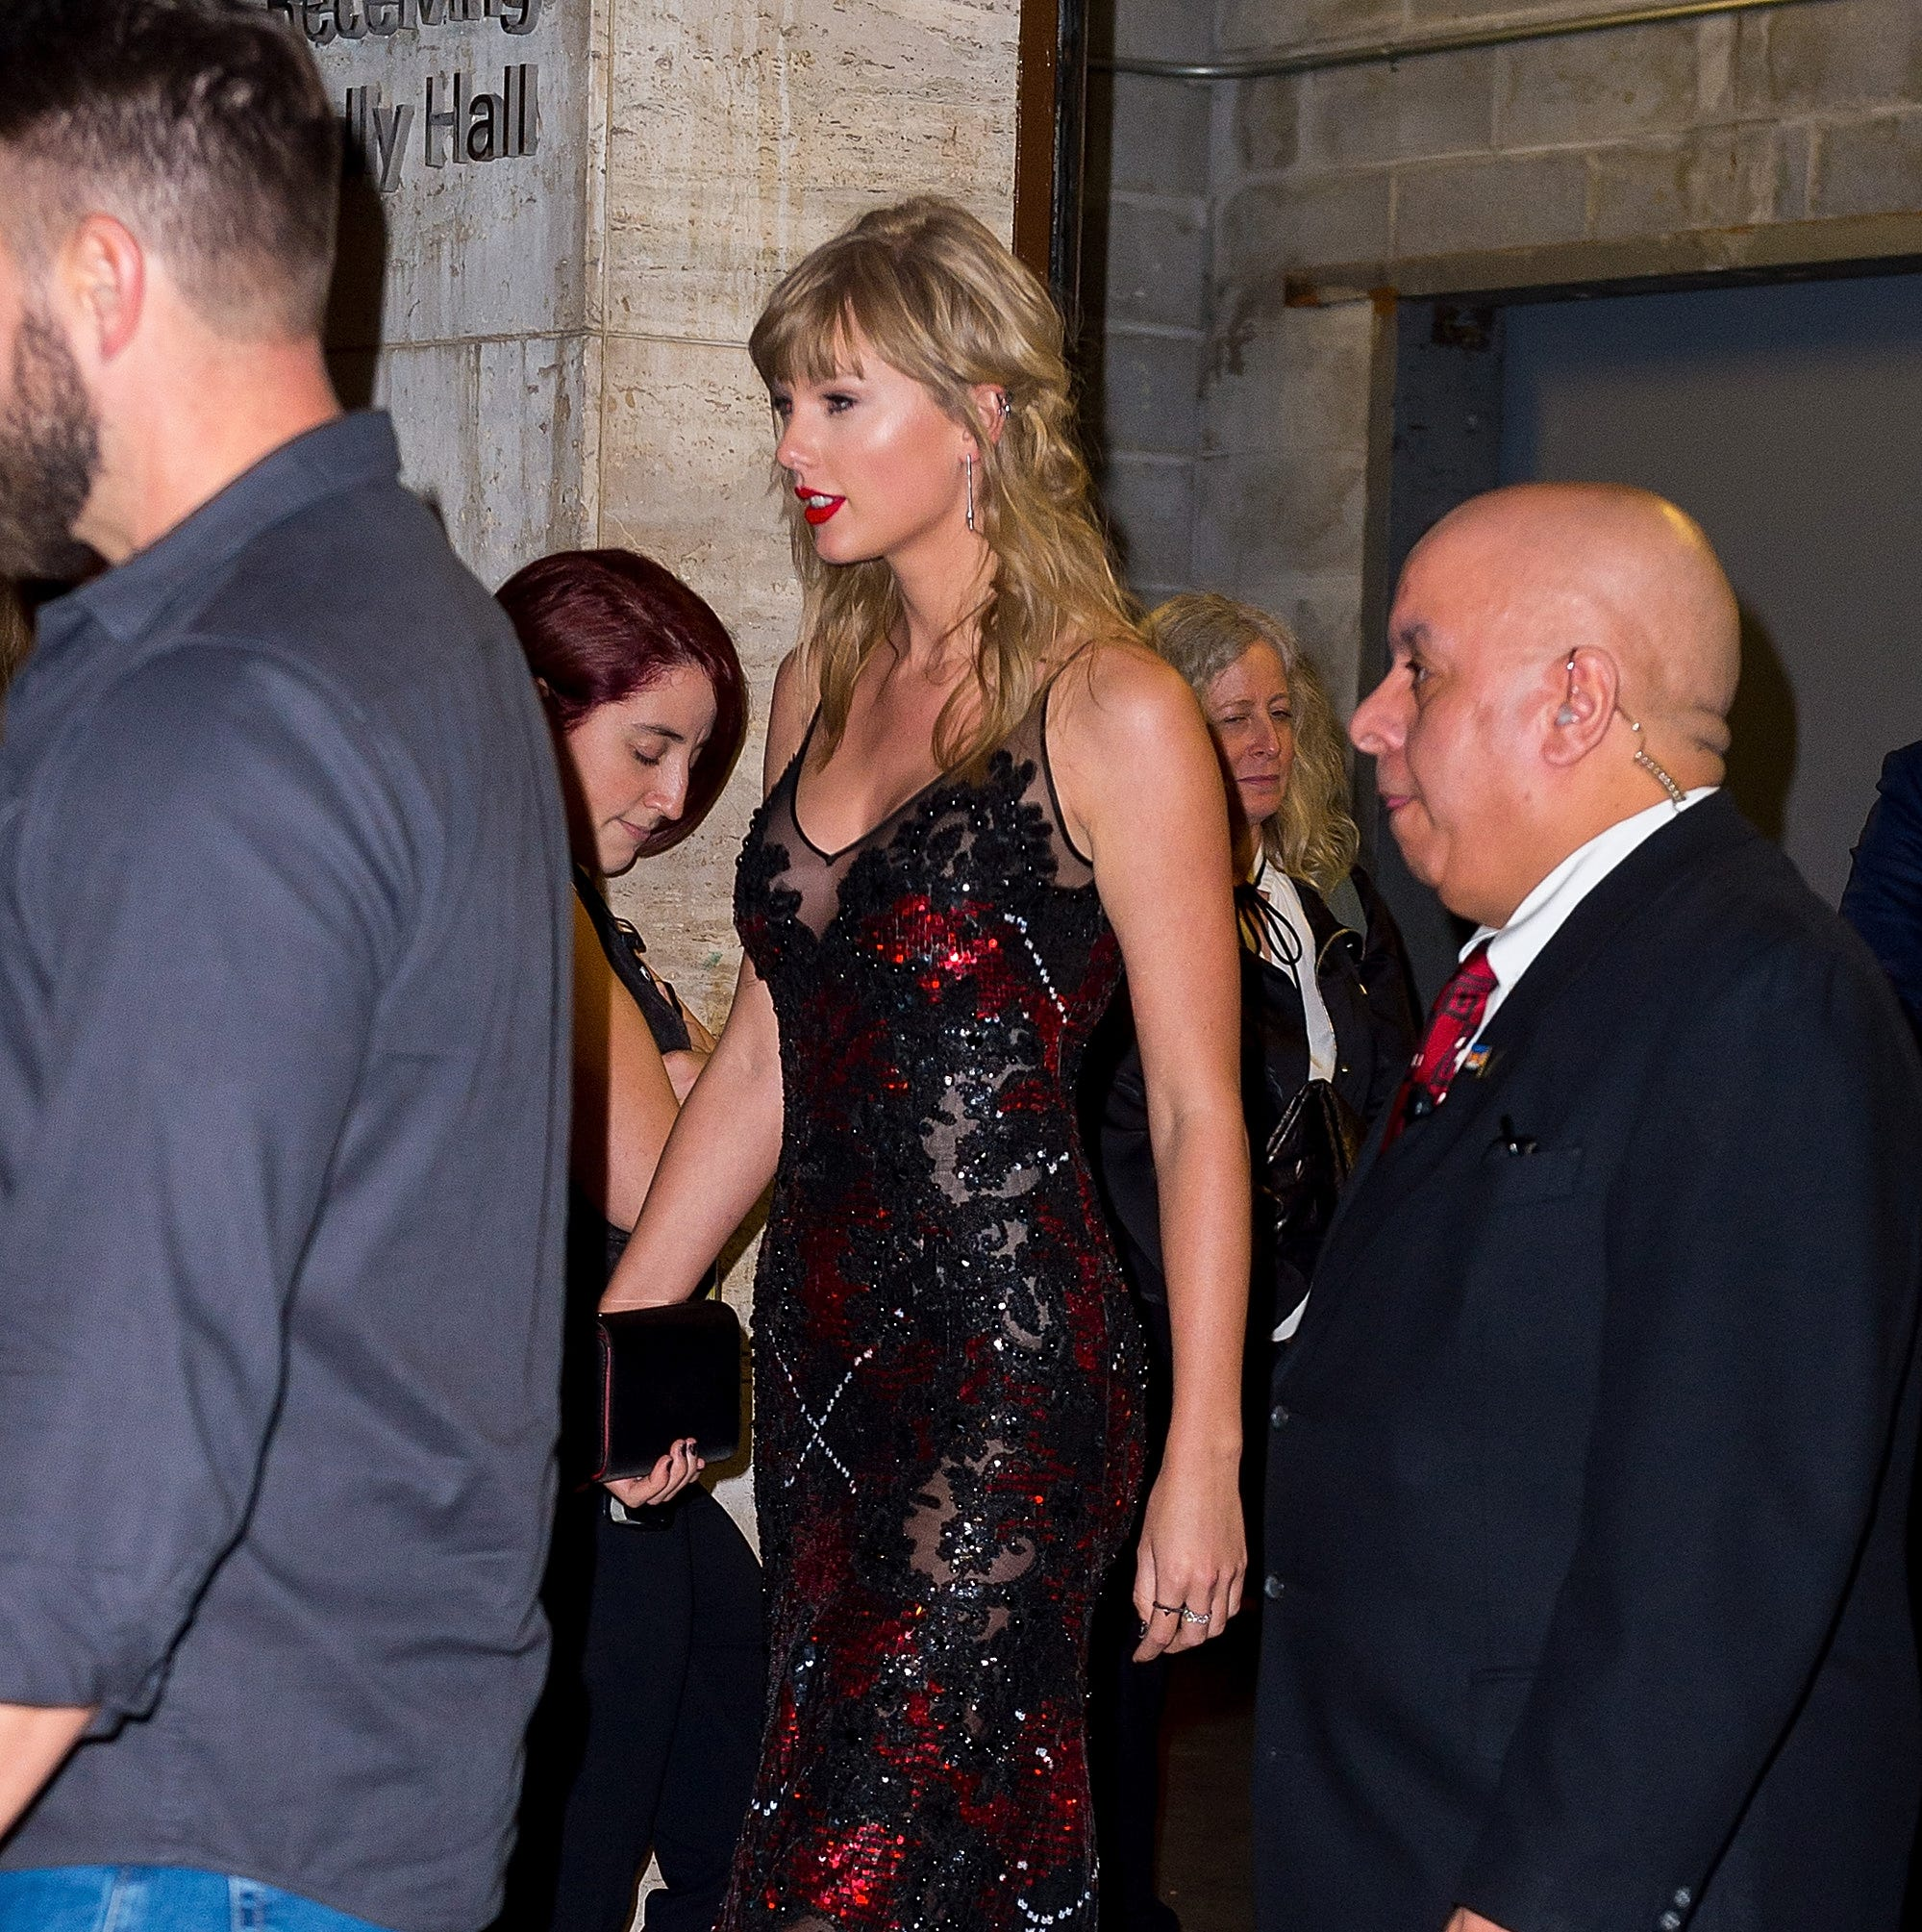 Taylor Swift is seen in the Upper West Side on Sept. 28, 2018 in New York.